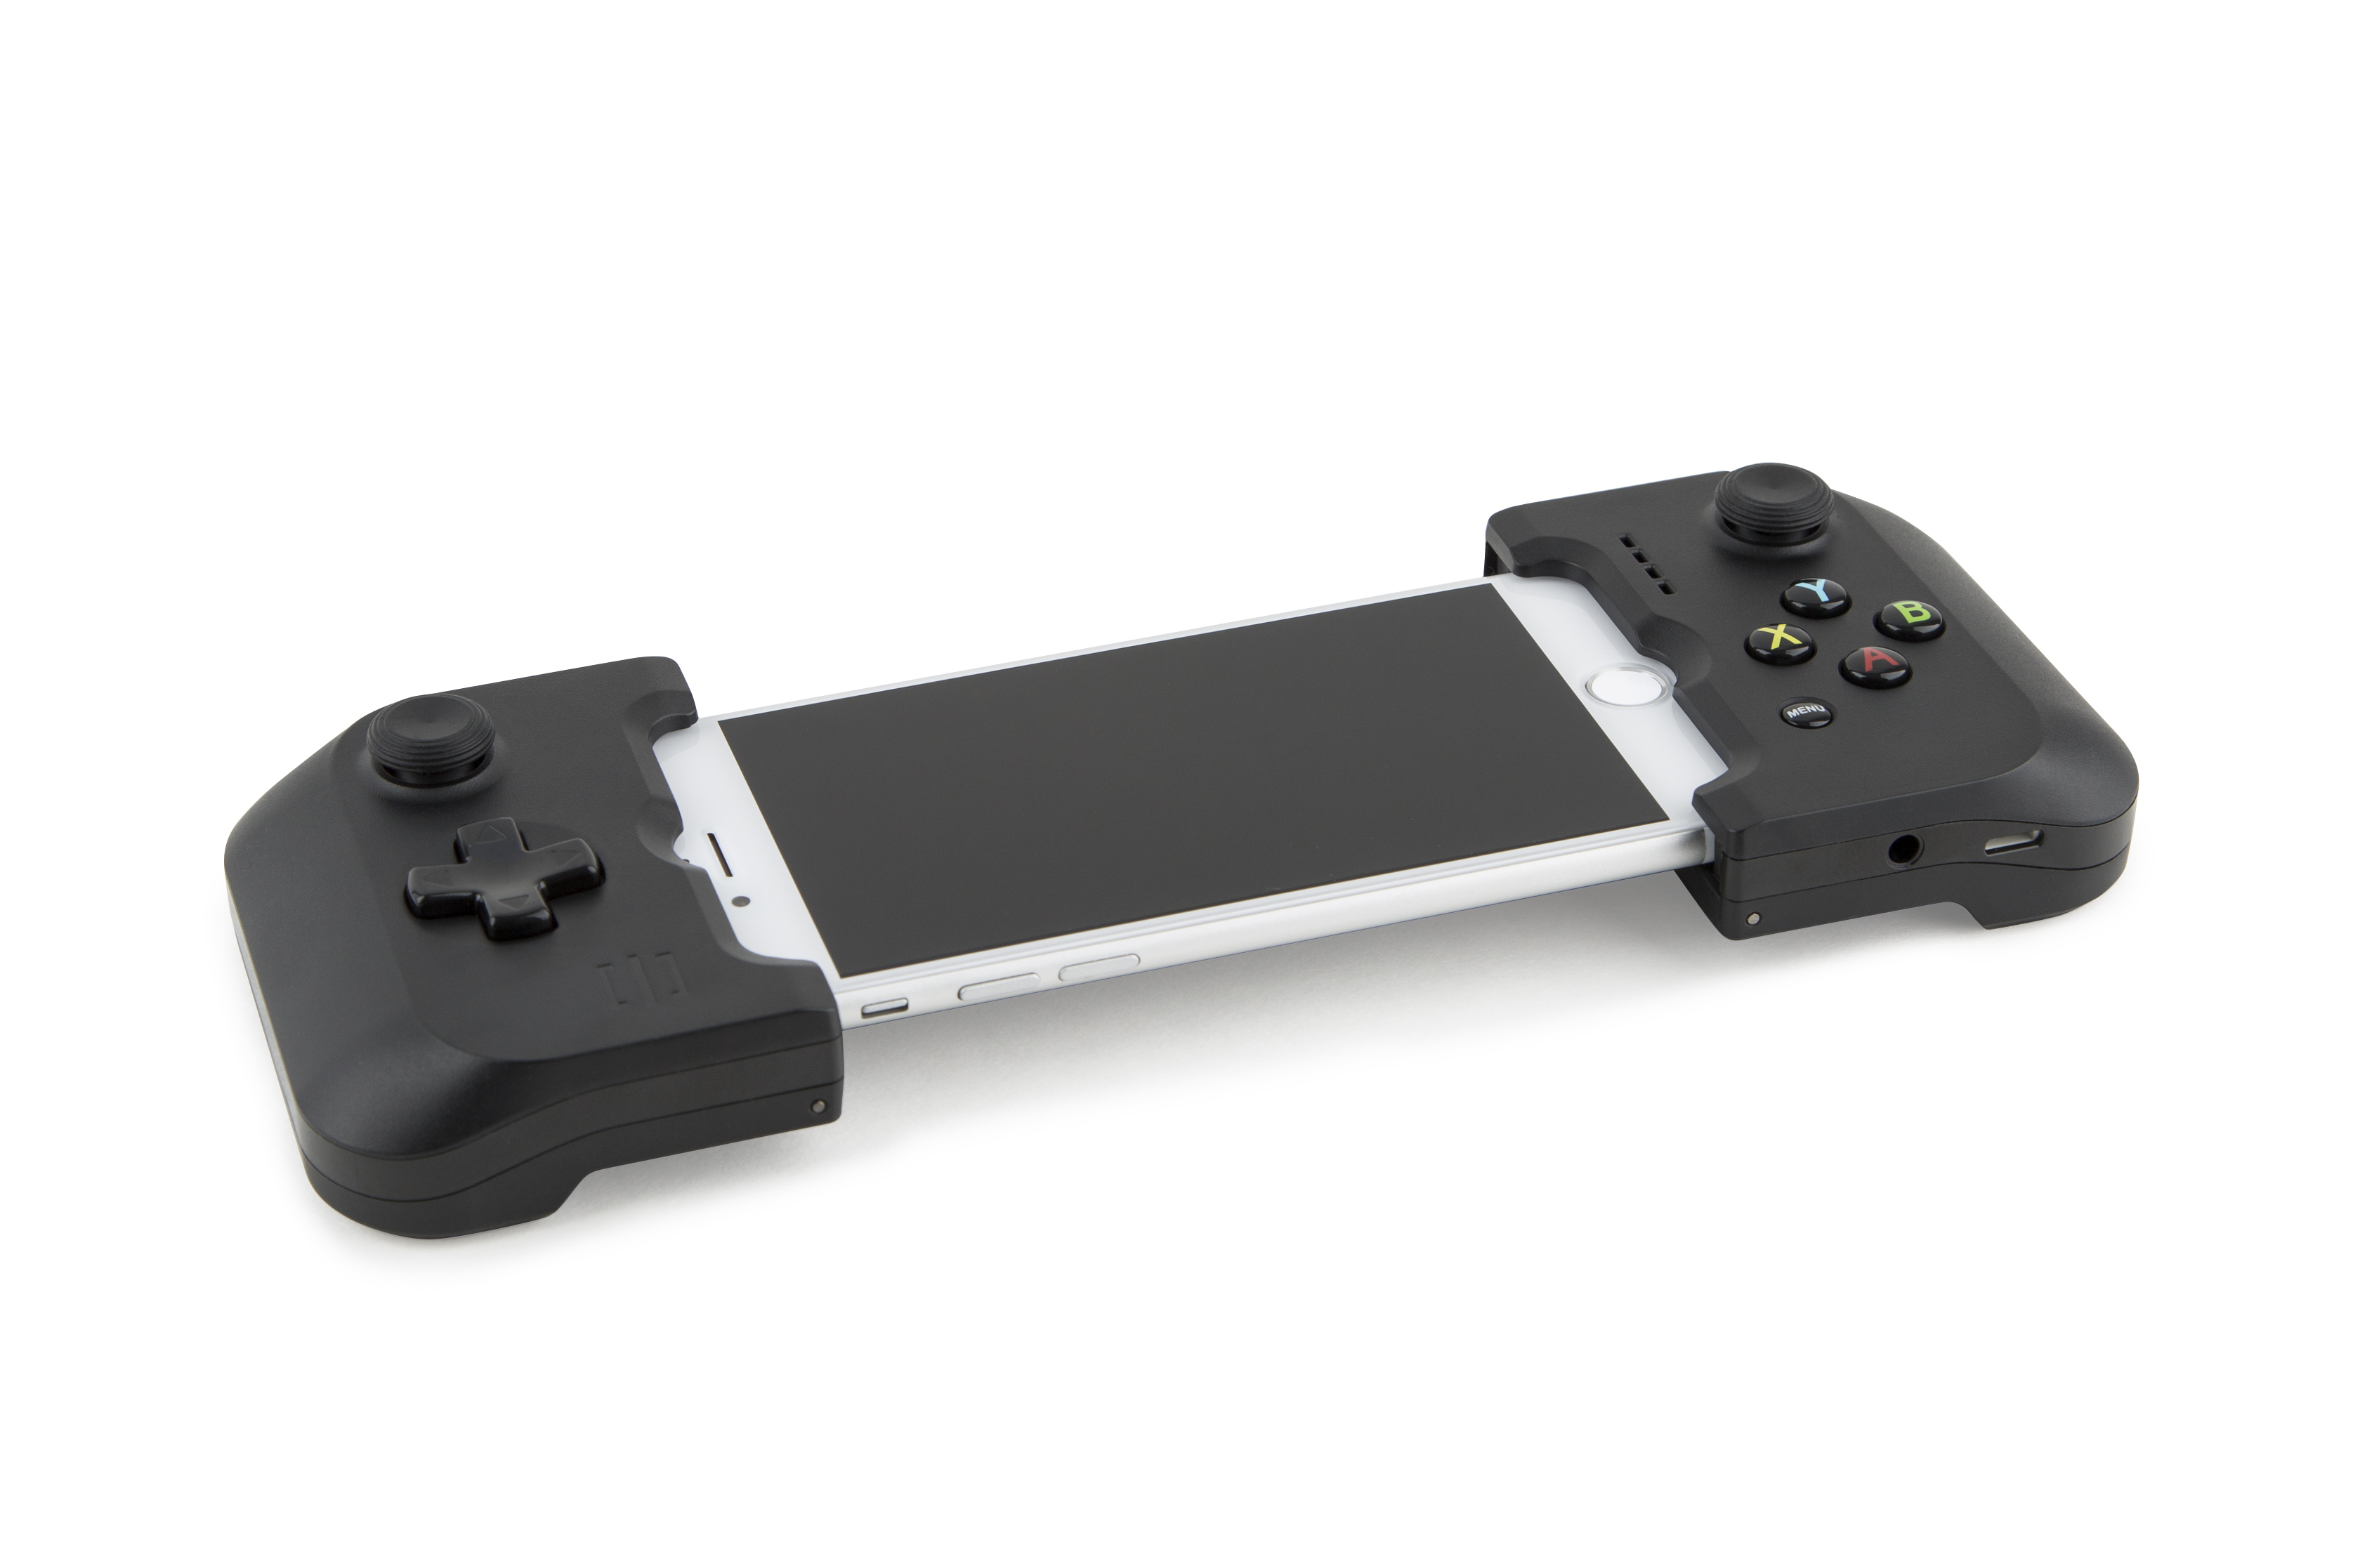 Gamevice Announces Joy-Con Like Controllers for iPhone